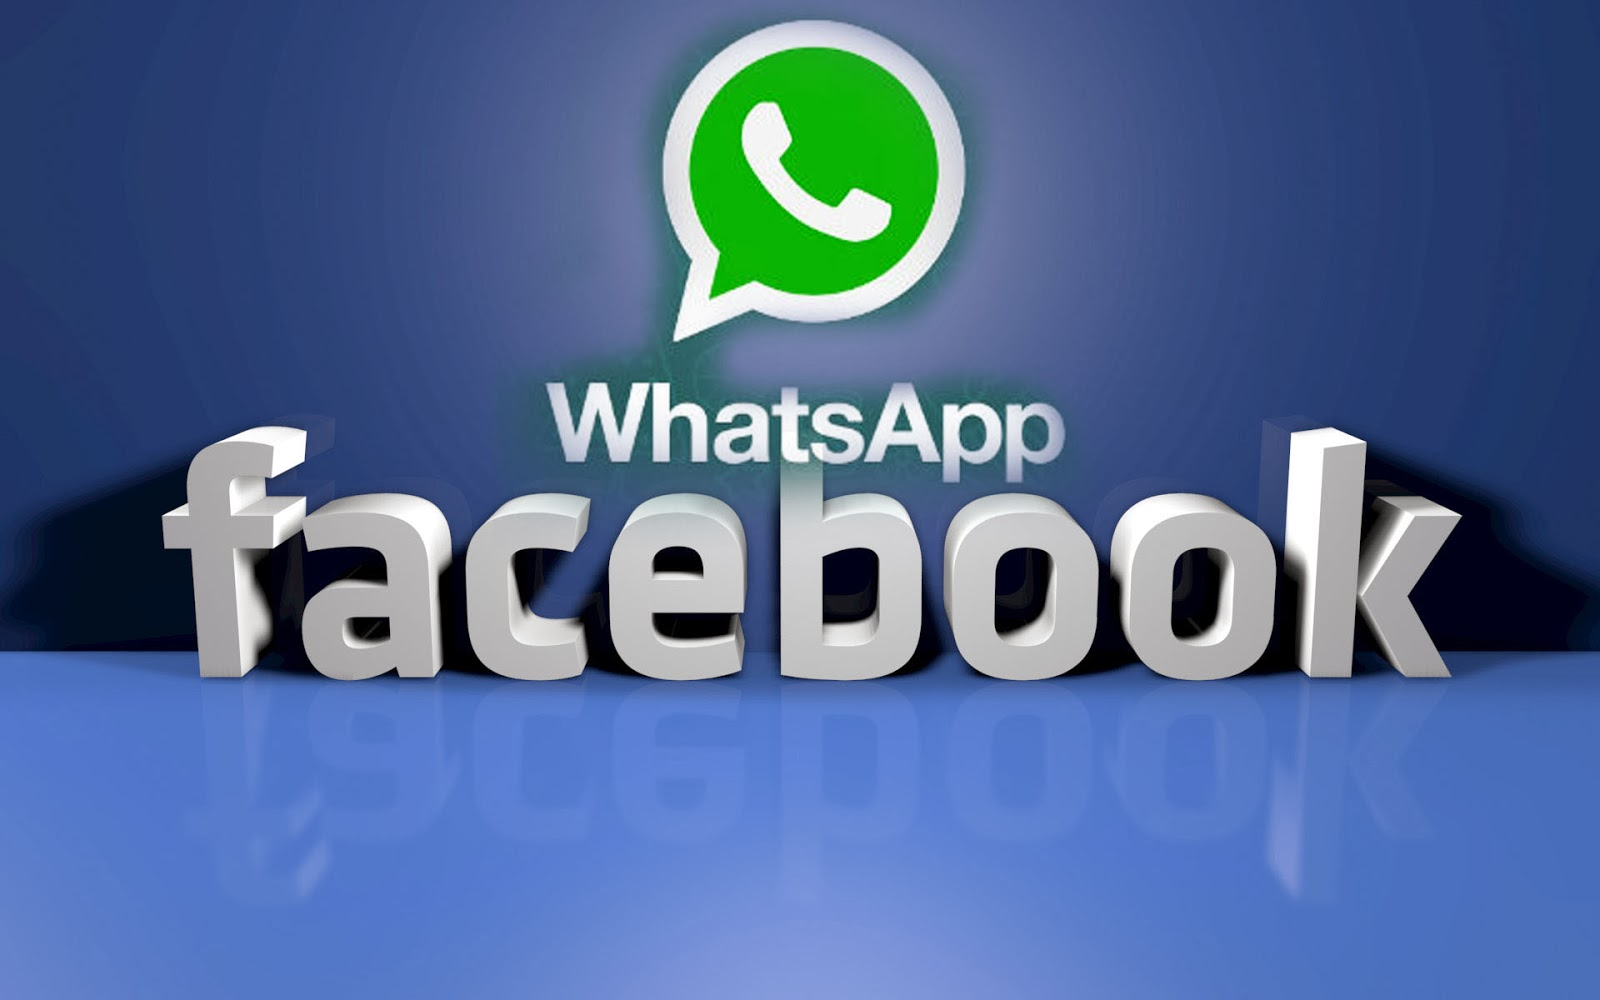 Facebook is working on a stablecoin for WhatsApp